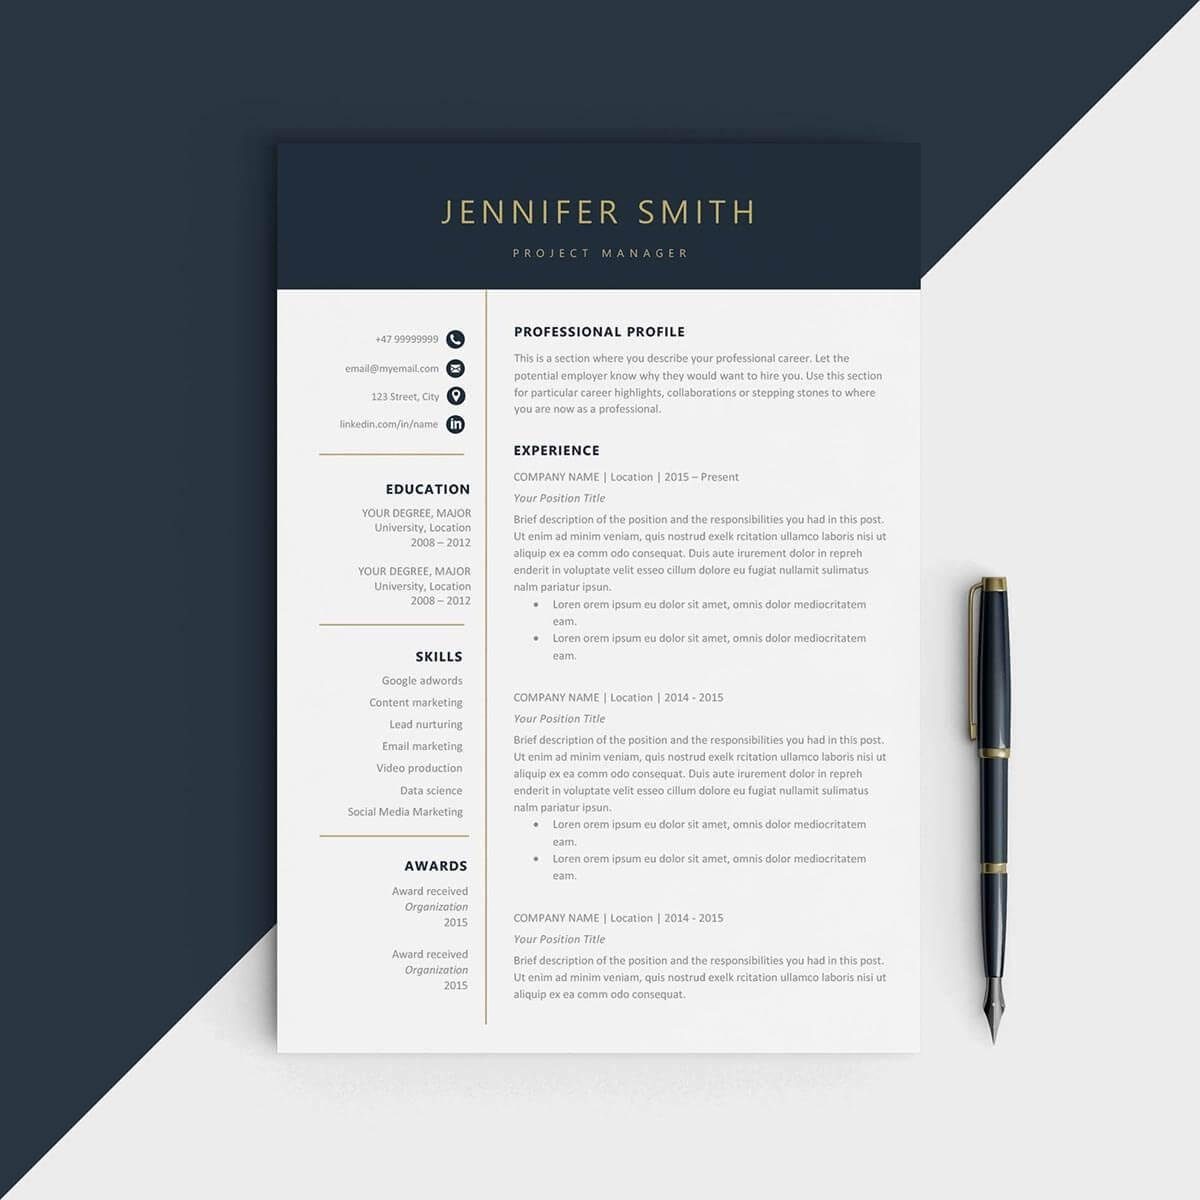 How Long Should A Resume Be? One Page Resume Vs Two Page